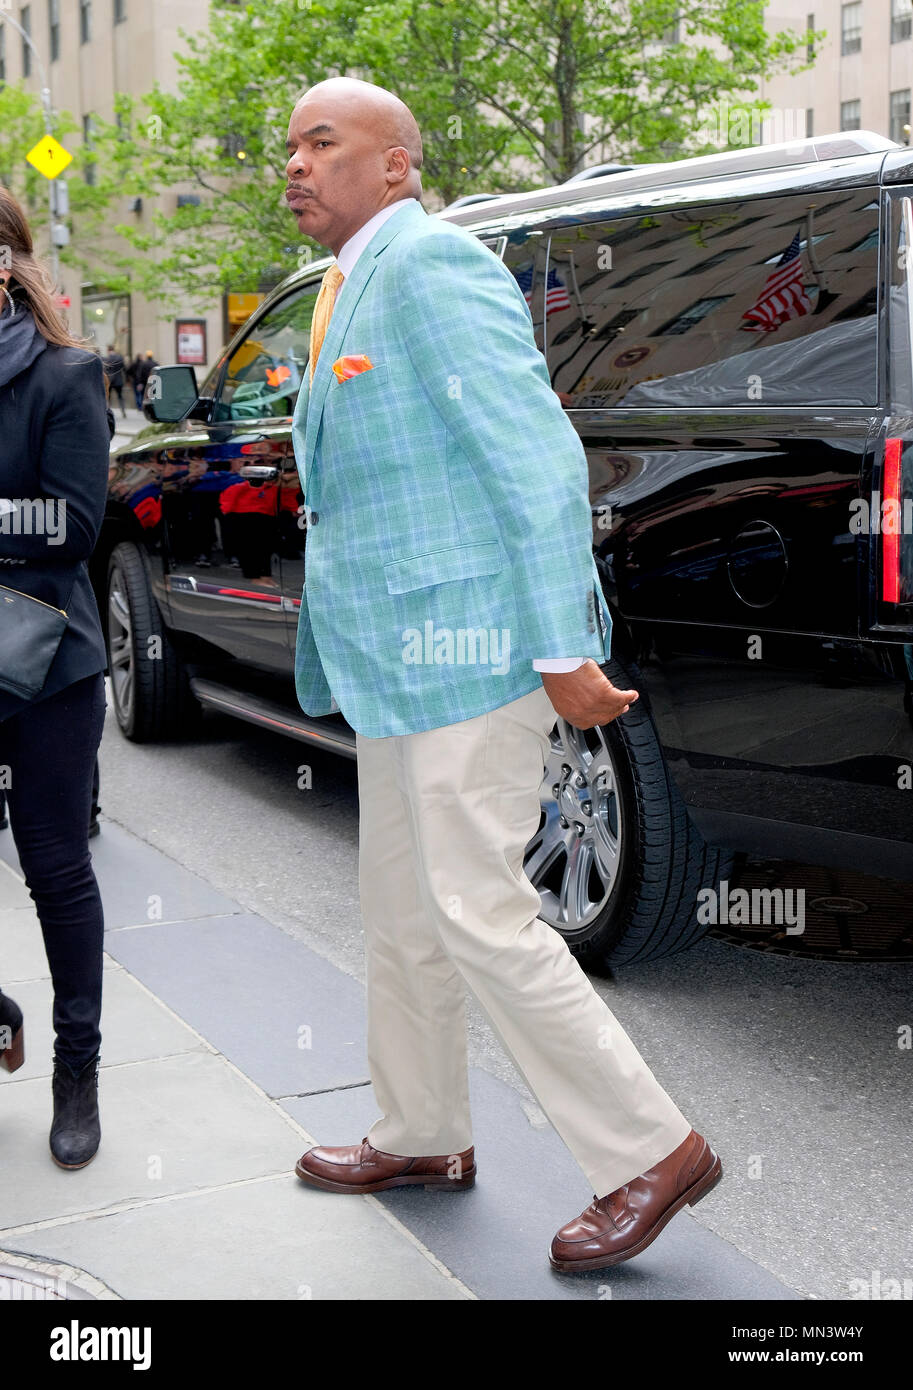 NEW YORK, NY - MAY 15: David Alan Grier is arriving at the 2017 NBCUniversal Upfront at Radio City Music Hall on May 15, 2017 in New York City.   People:  David Alan Grier - Stock Image